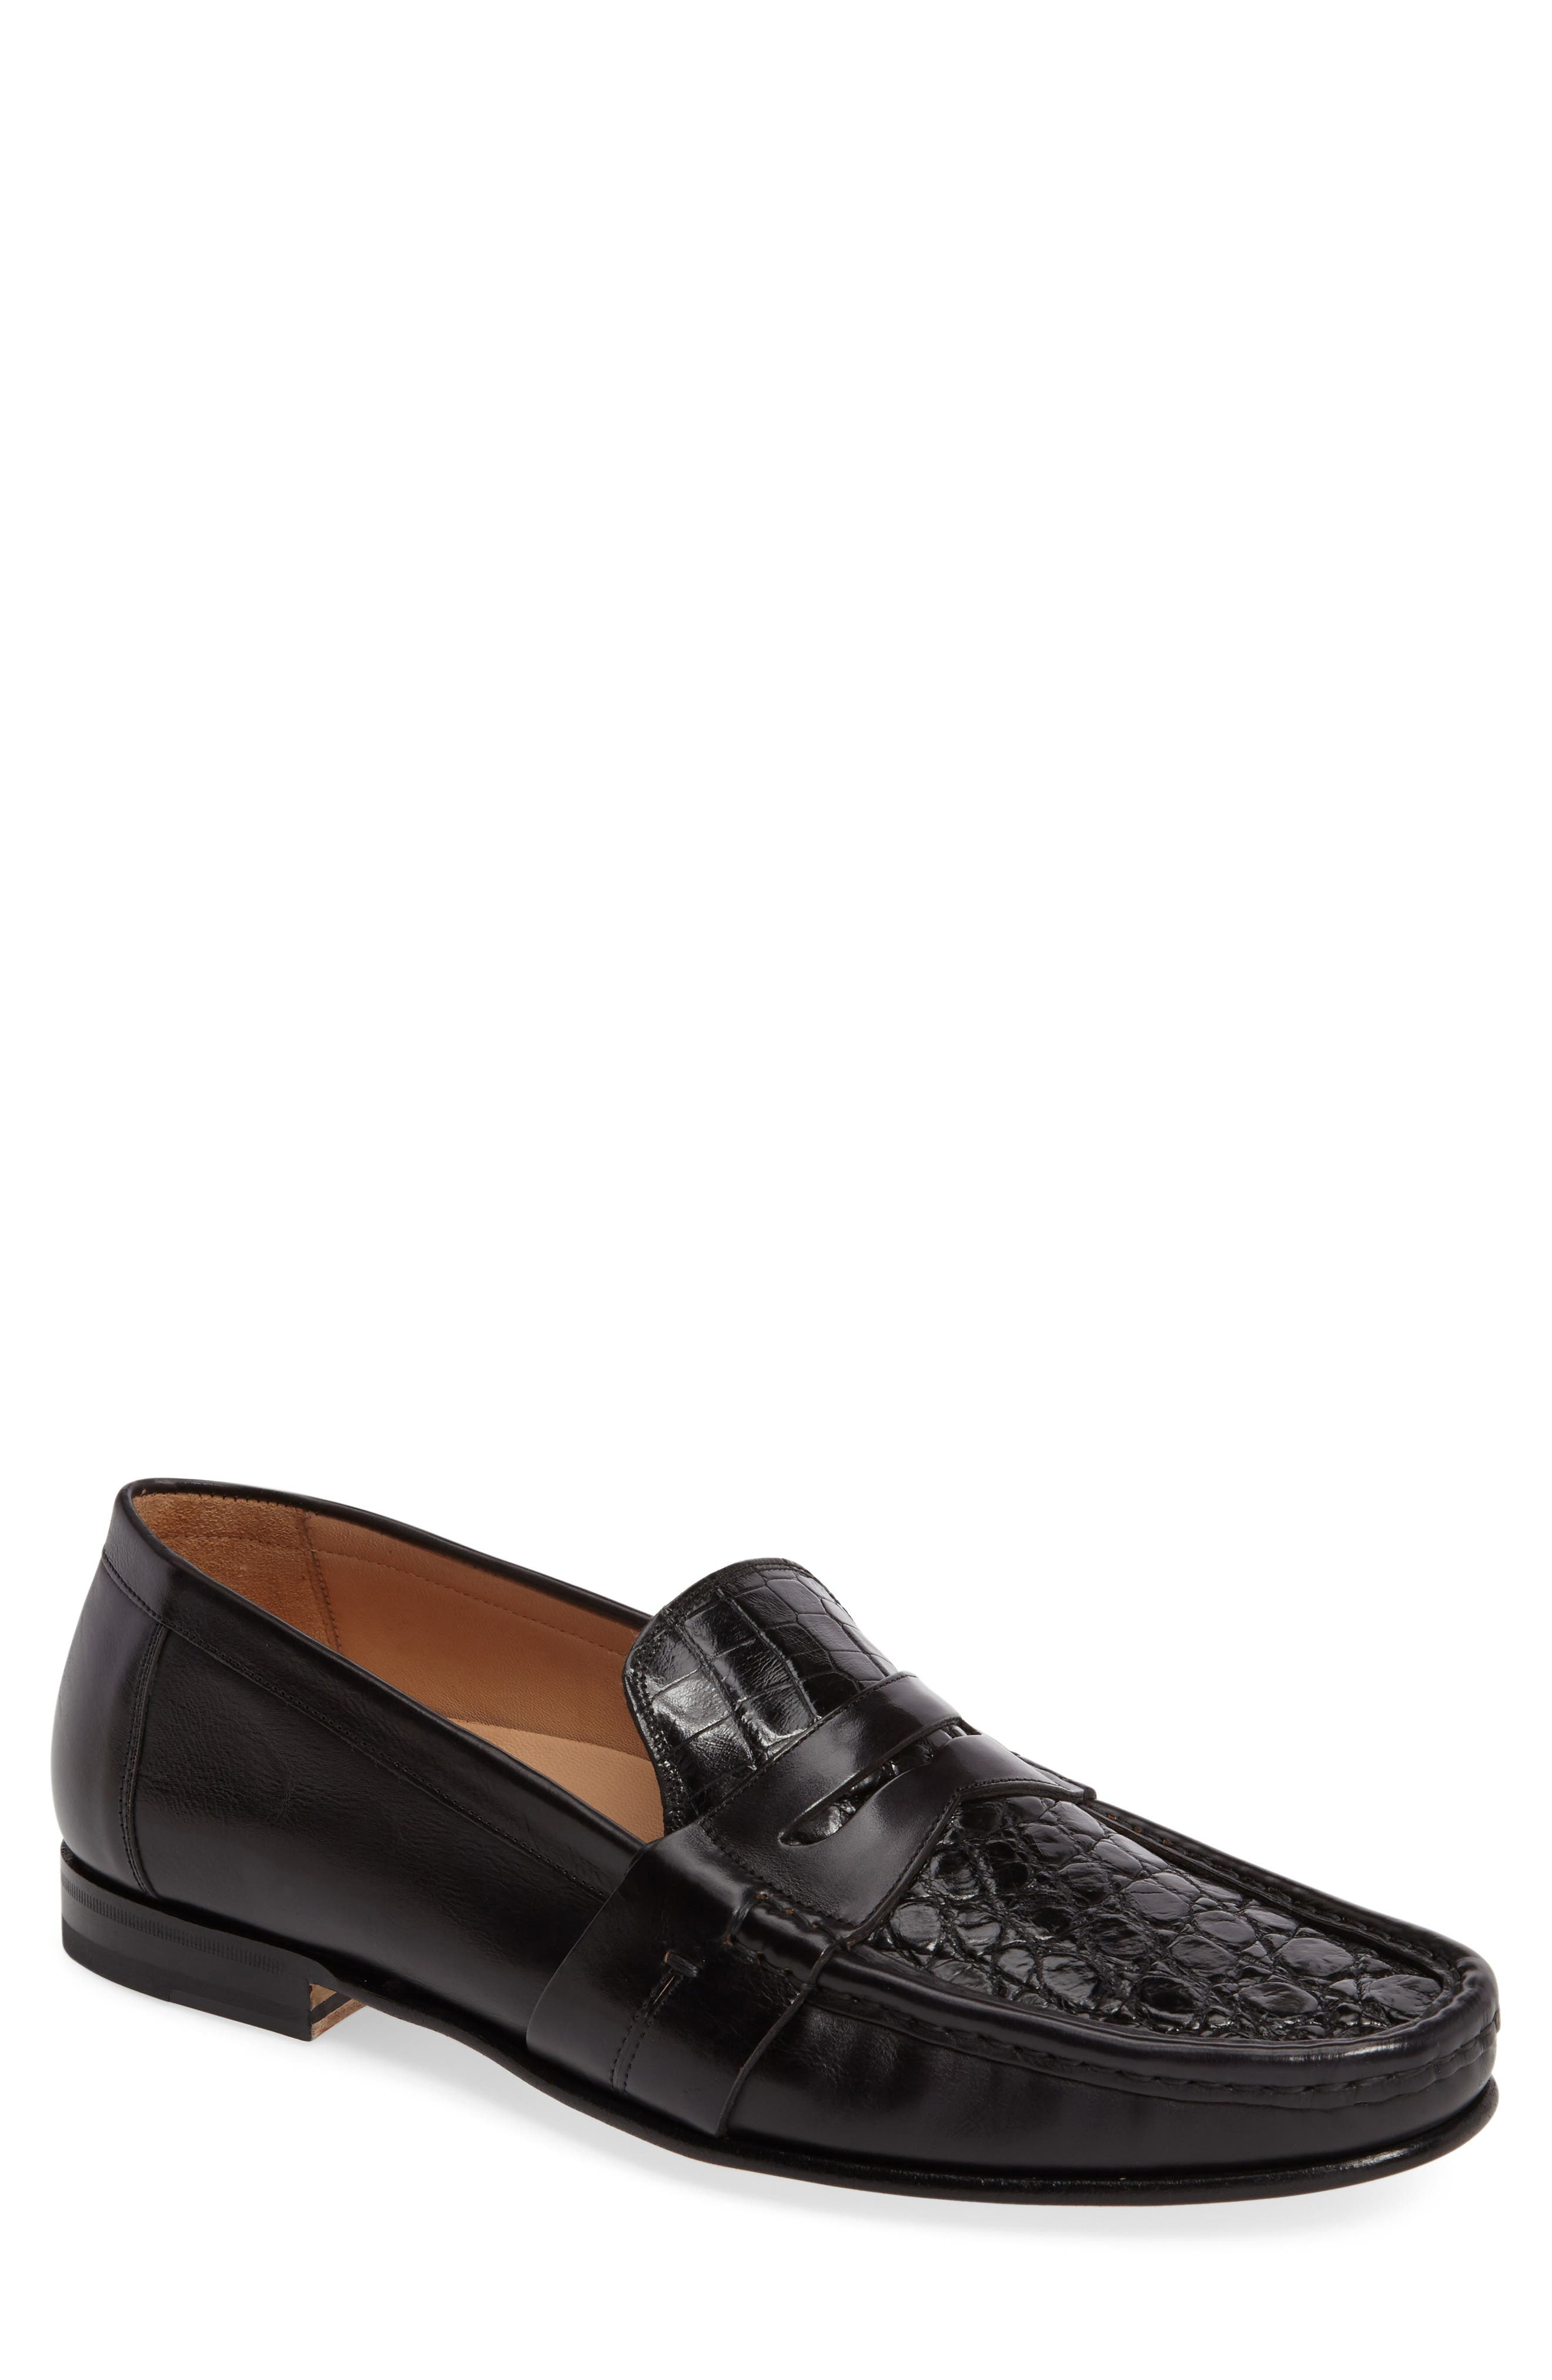 Marconi Penny Loafer,                         Main,                         color,